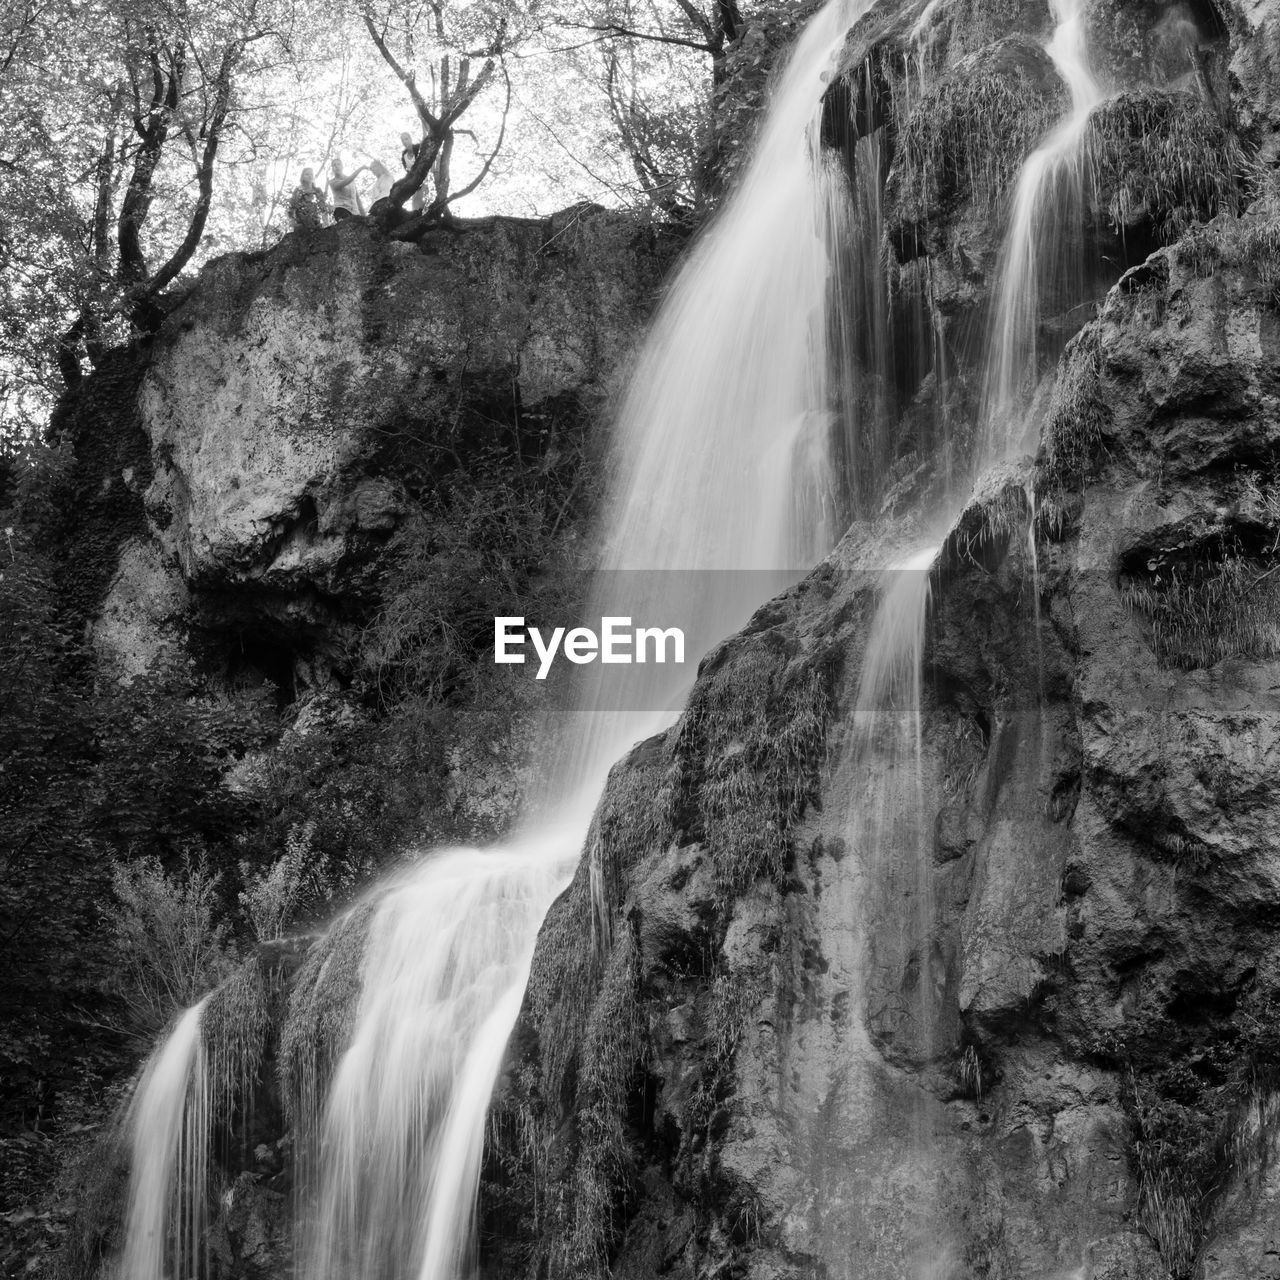 waterfall, motion, long exposure, flowing water, blurred motion, water, rock - object, beauty in nature, nature, scenics, speed, forest, rapid, outdoors, no people, day, power in nature, tree